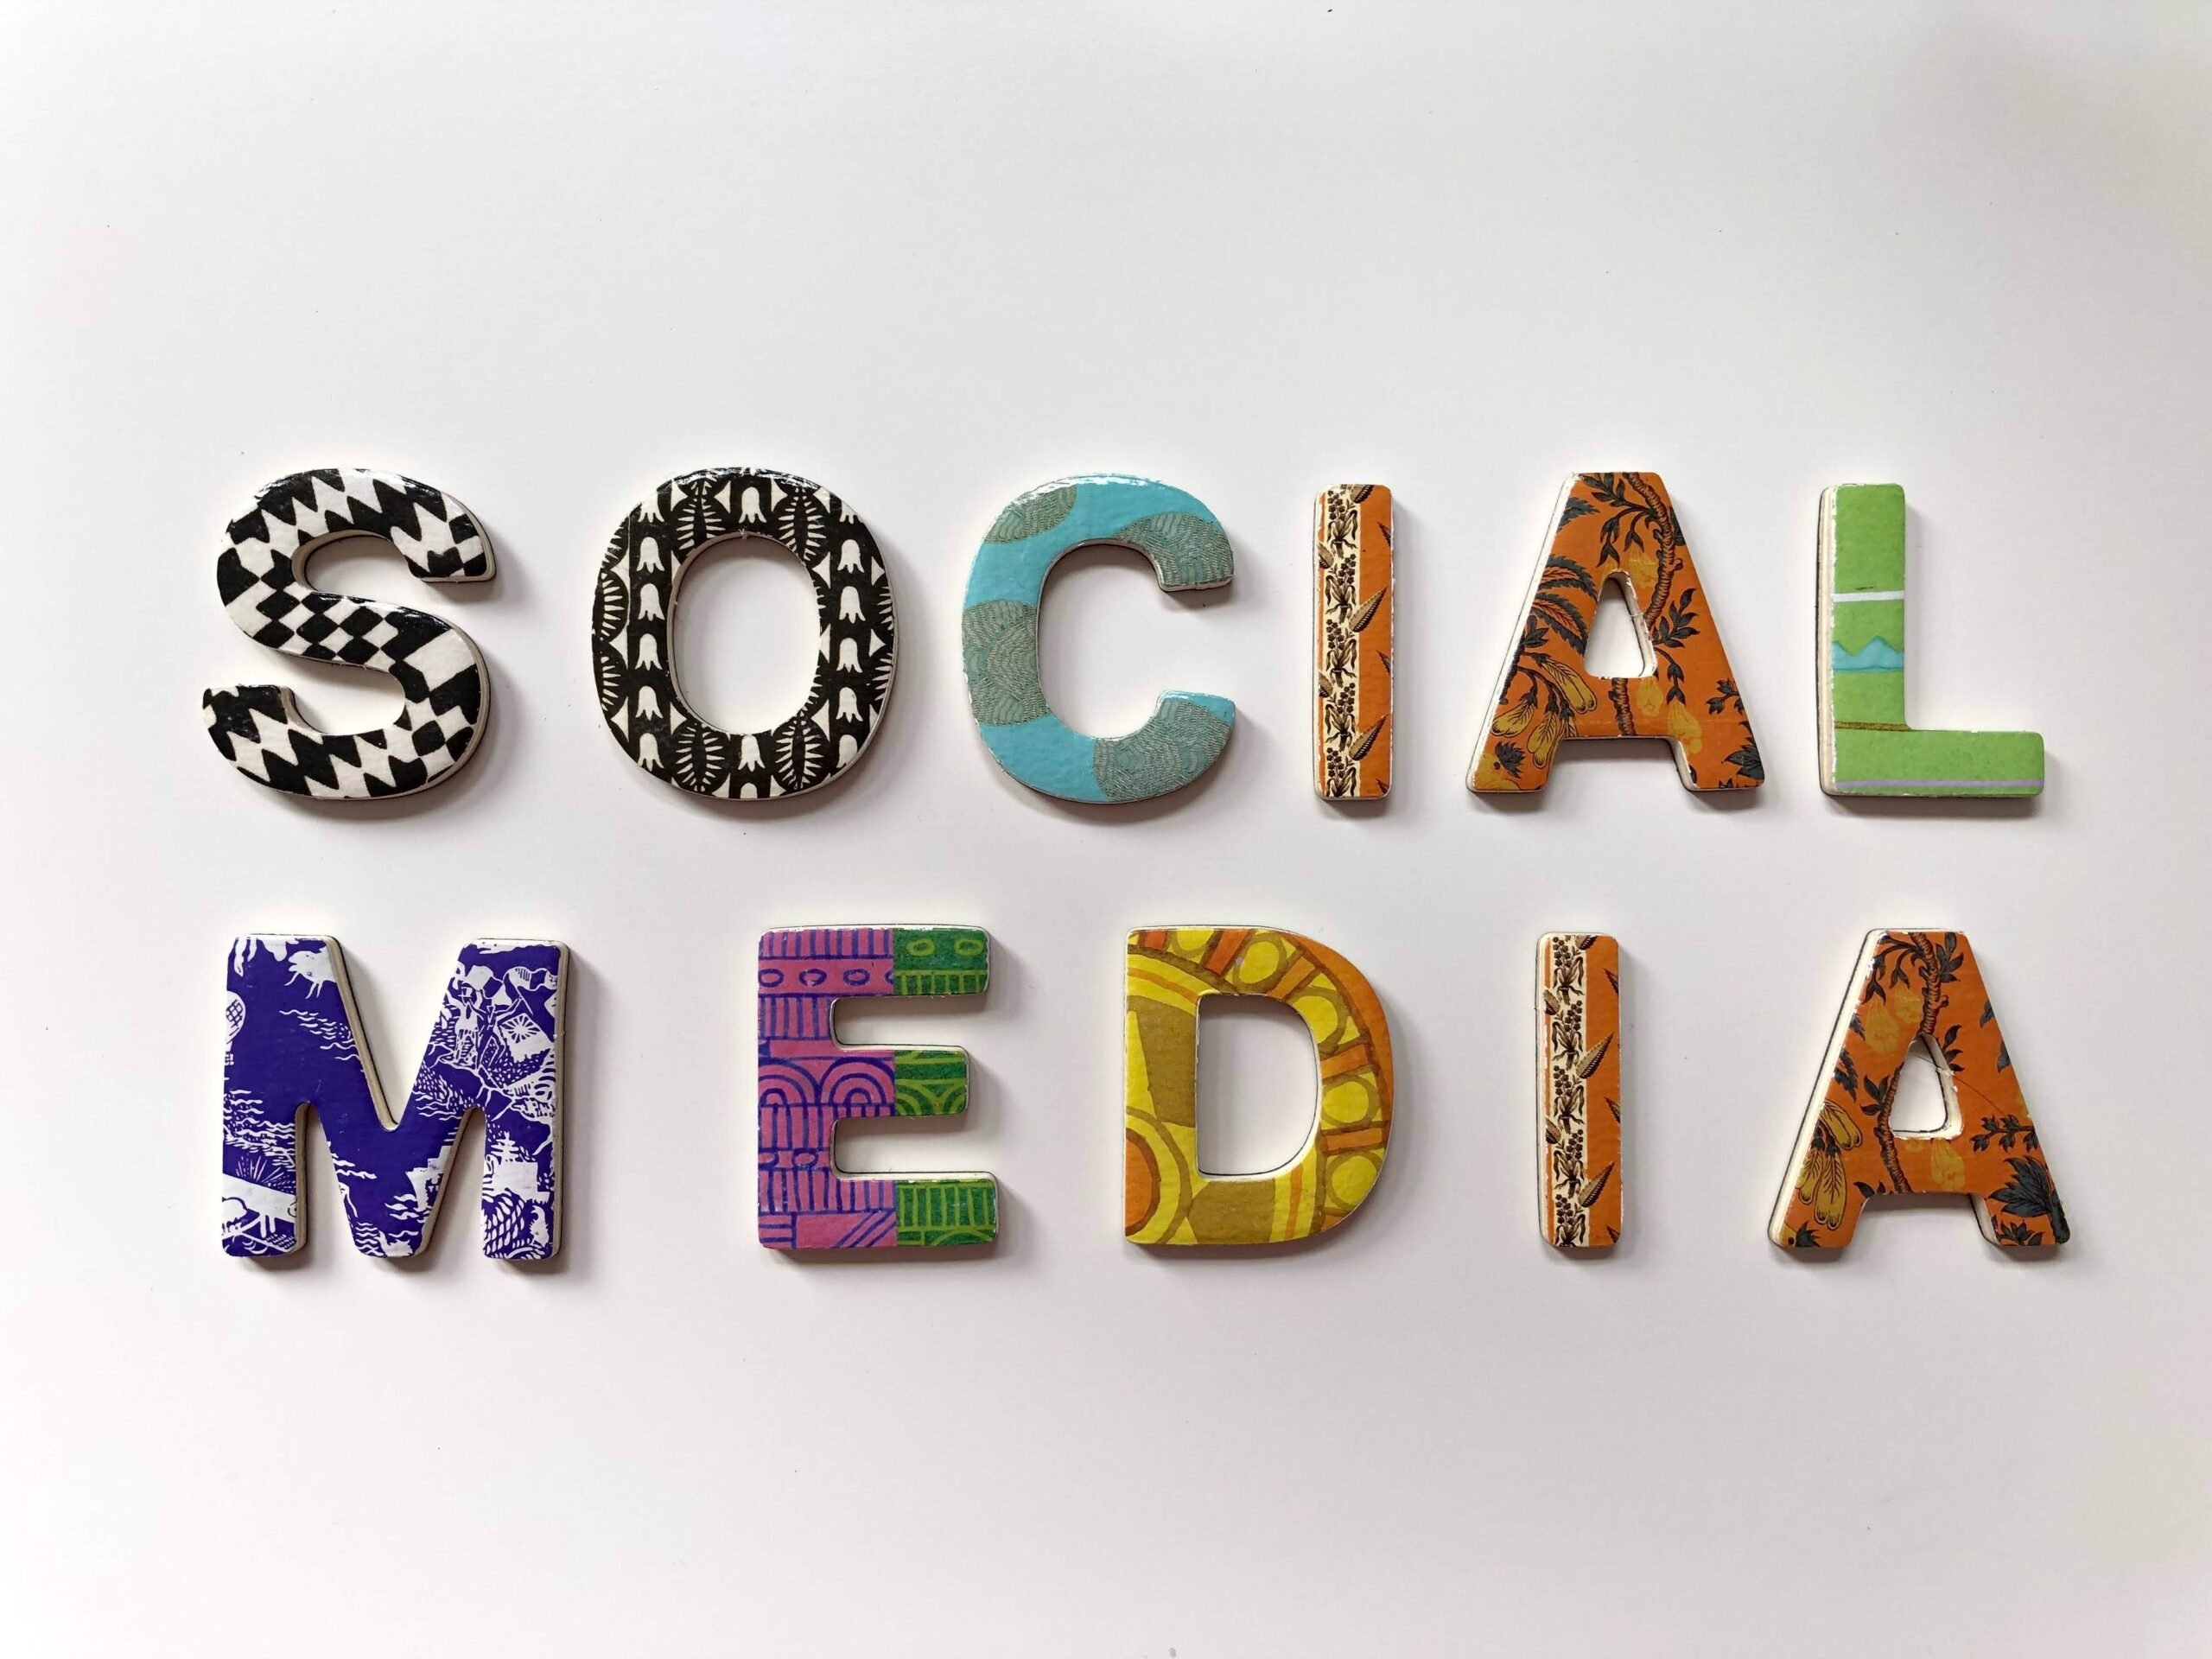 Practicing Safe Social: Social Media And Your Mental Health